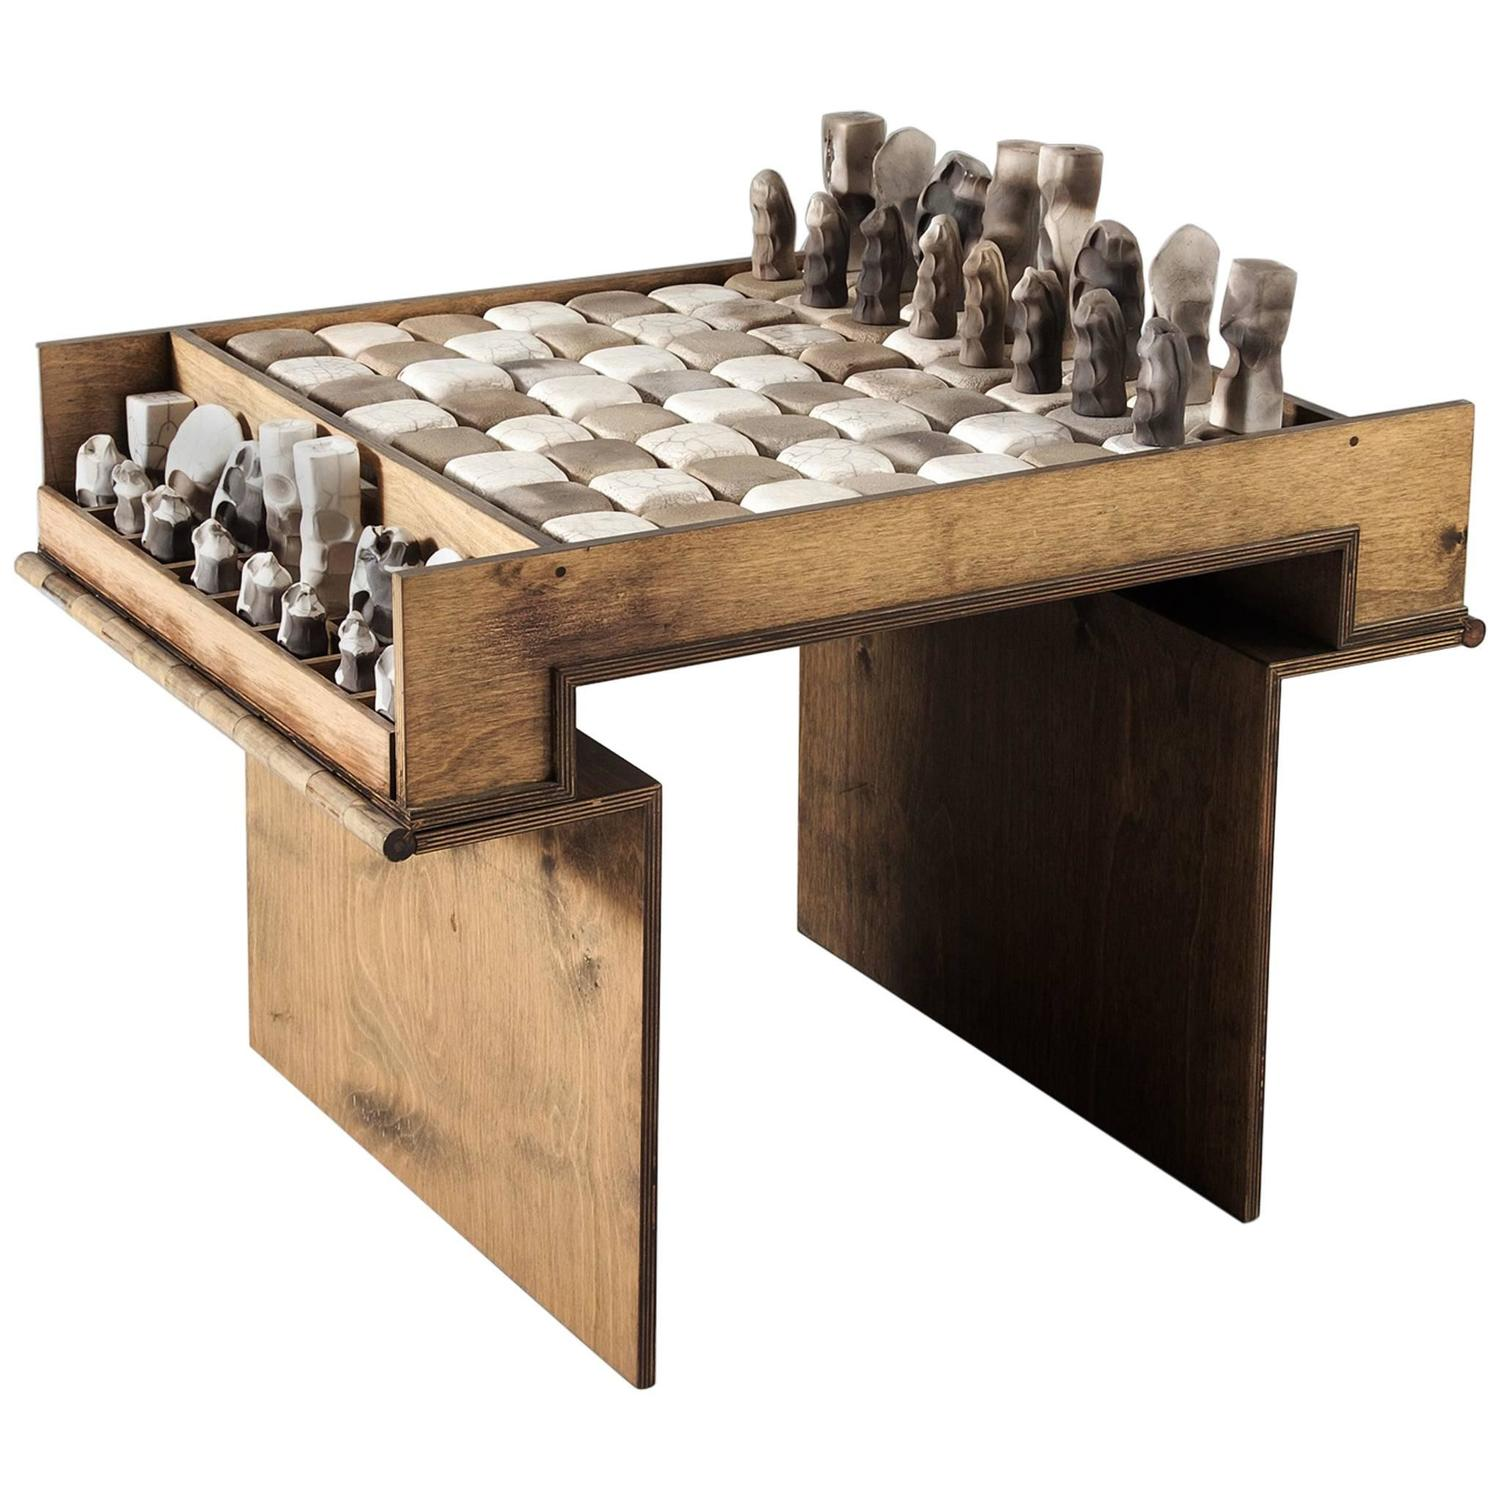 Boardroom Furniture For Sale: Exceptional Ceramic Chess Set And Table For Sale At 1stdibs